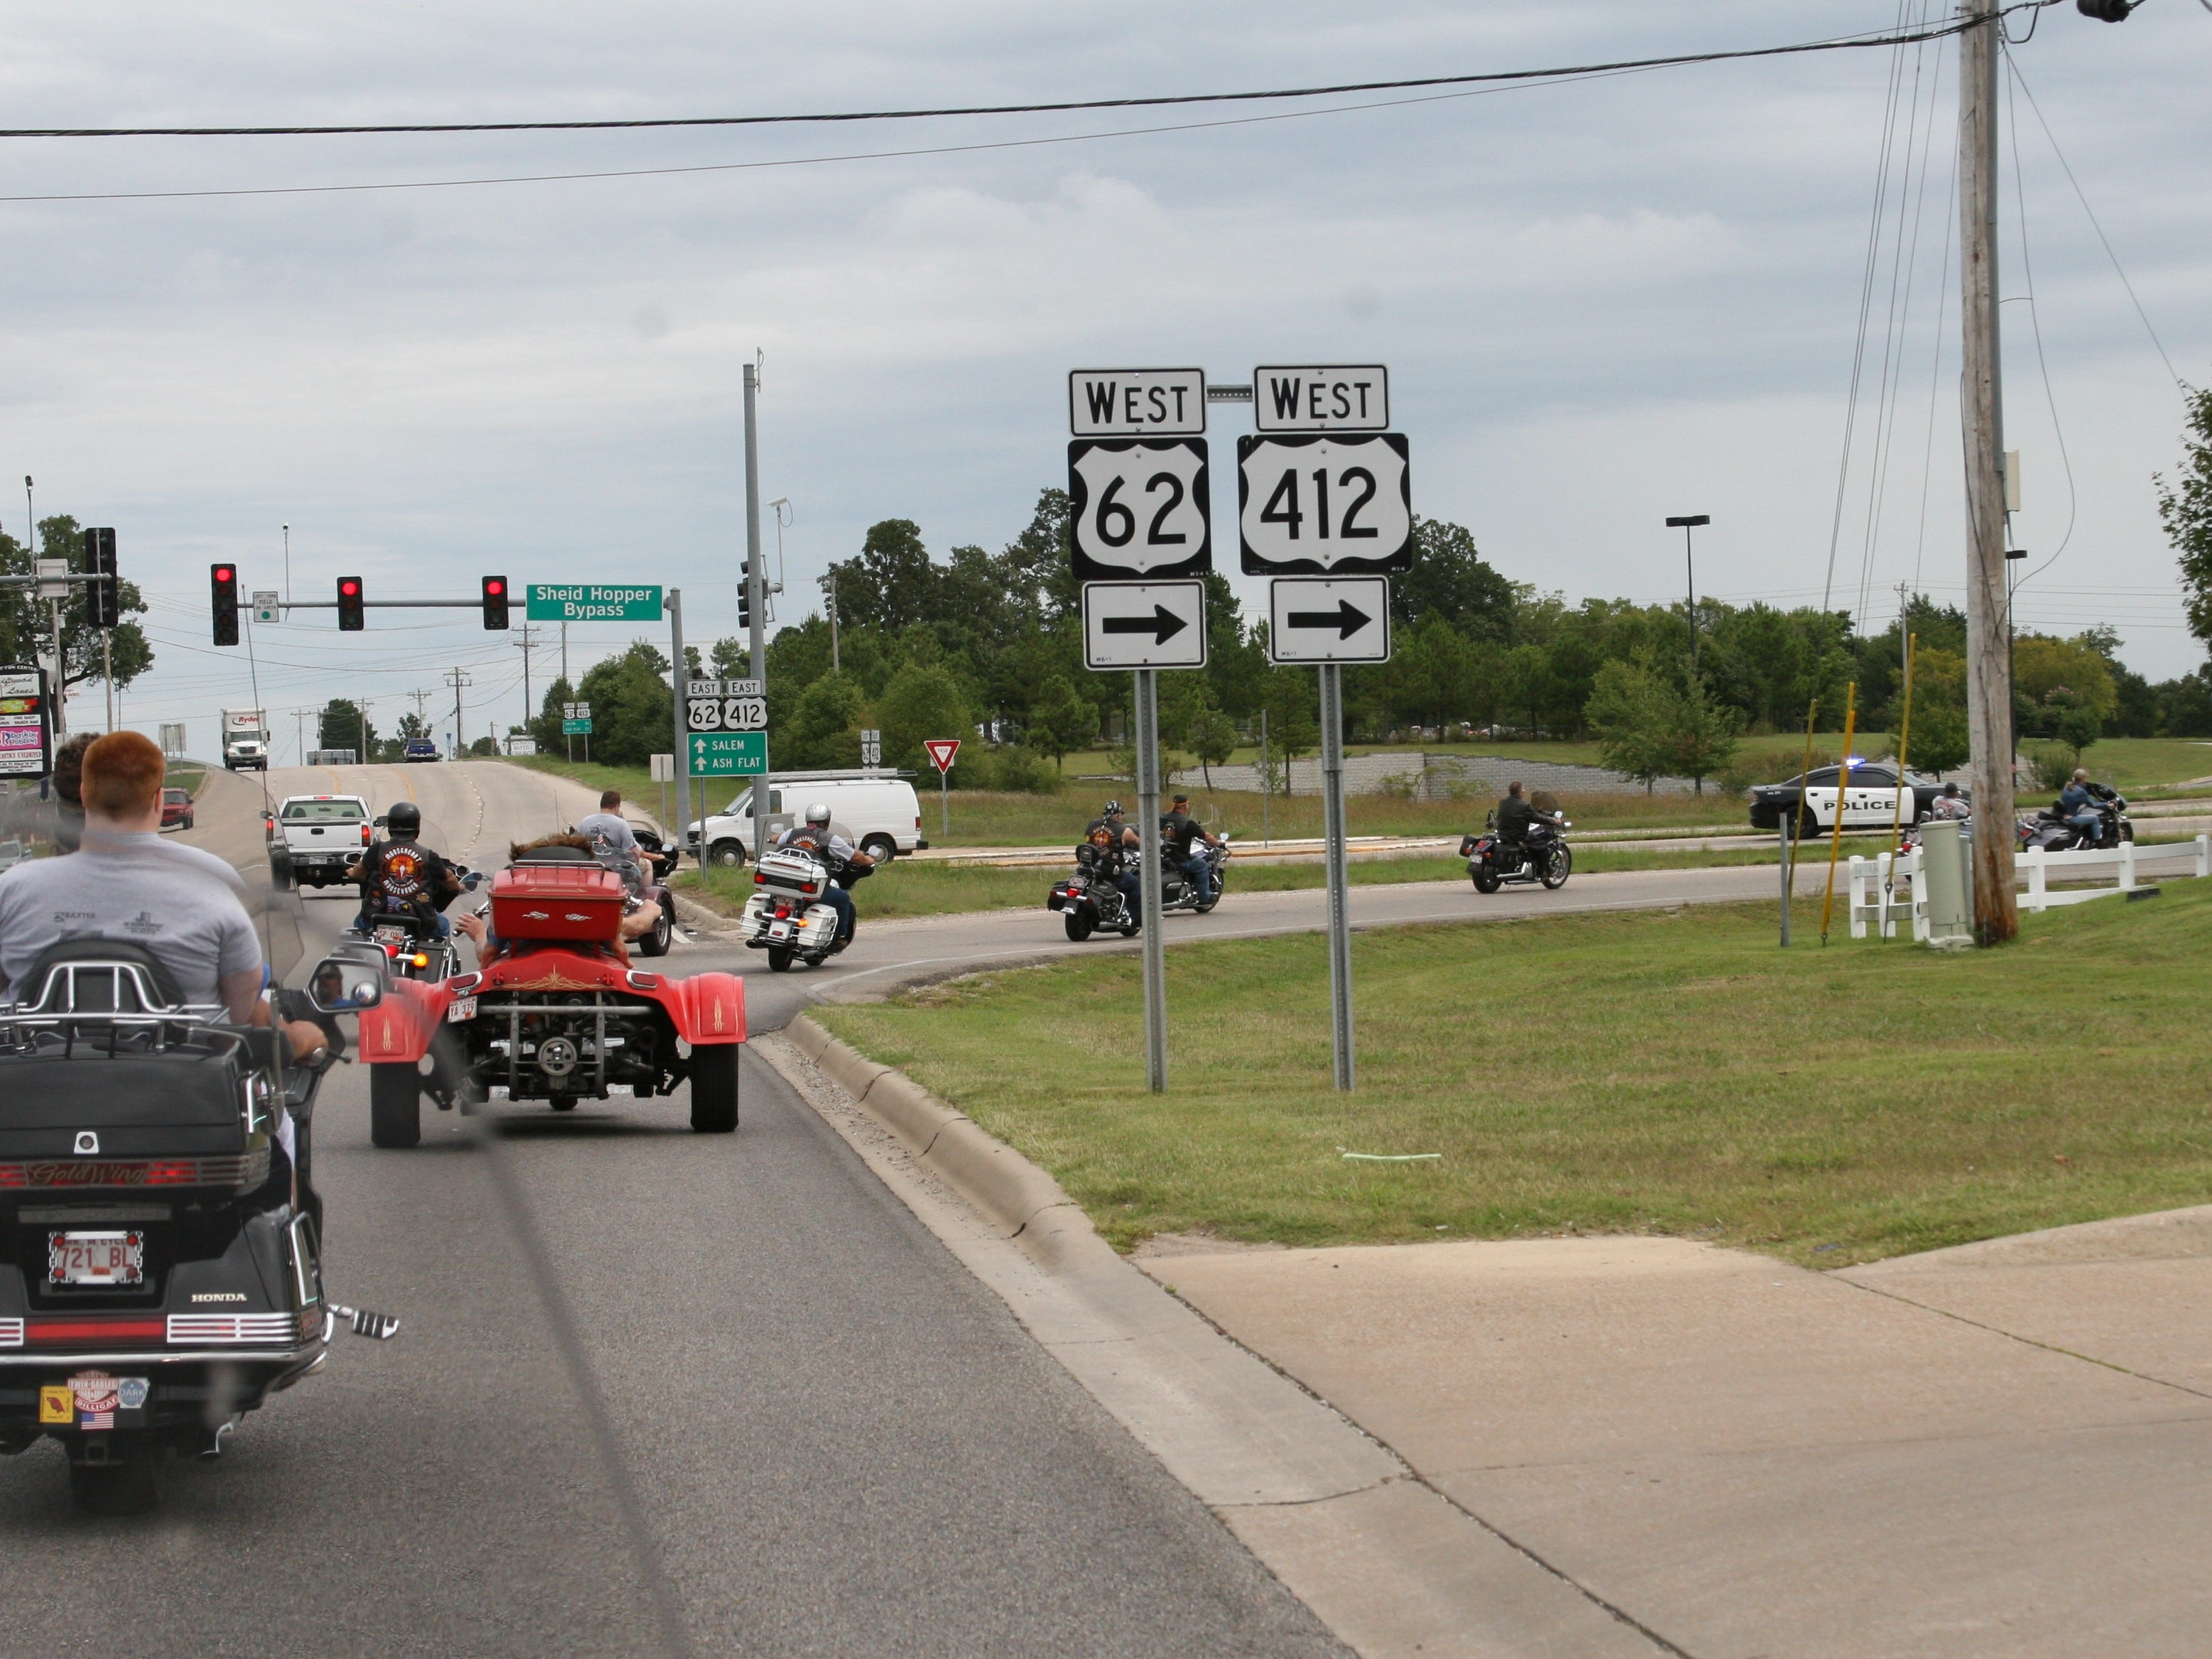 Approximately 30 motorcycles - mostly Harleys, several trikes, a couple of tandem cycles and even a cycle with a sidecar – participated in community ride on Wednesday for 94-year-old Dora Uelmann. Around 40 individual riders made their way along Highway 61/412 East, down the bypass, and back to Elmcroft where the widowed Uelmann resides.